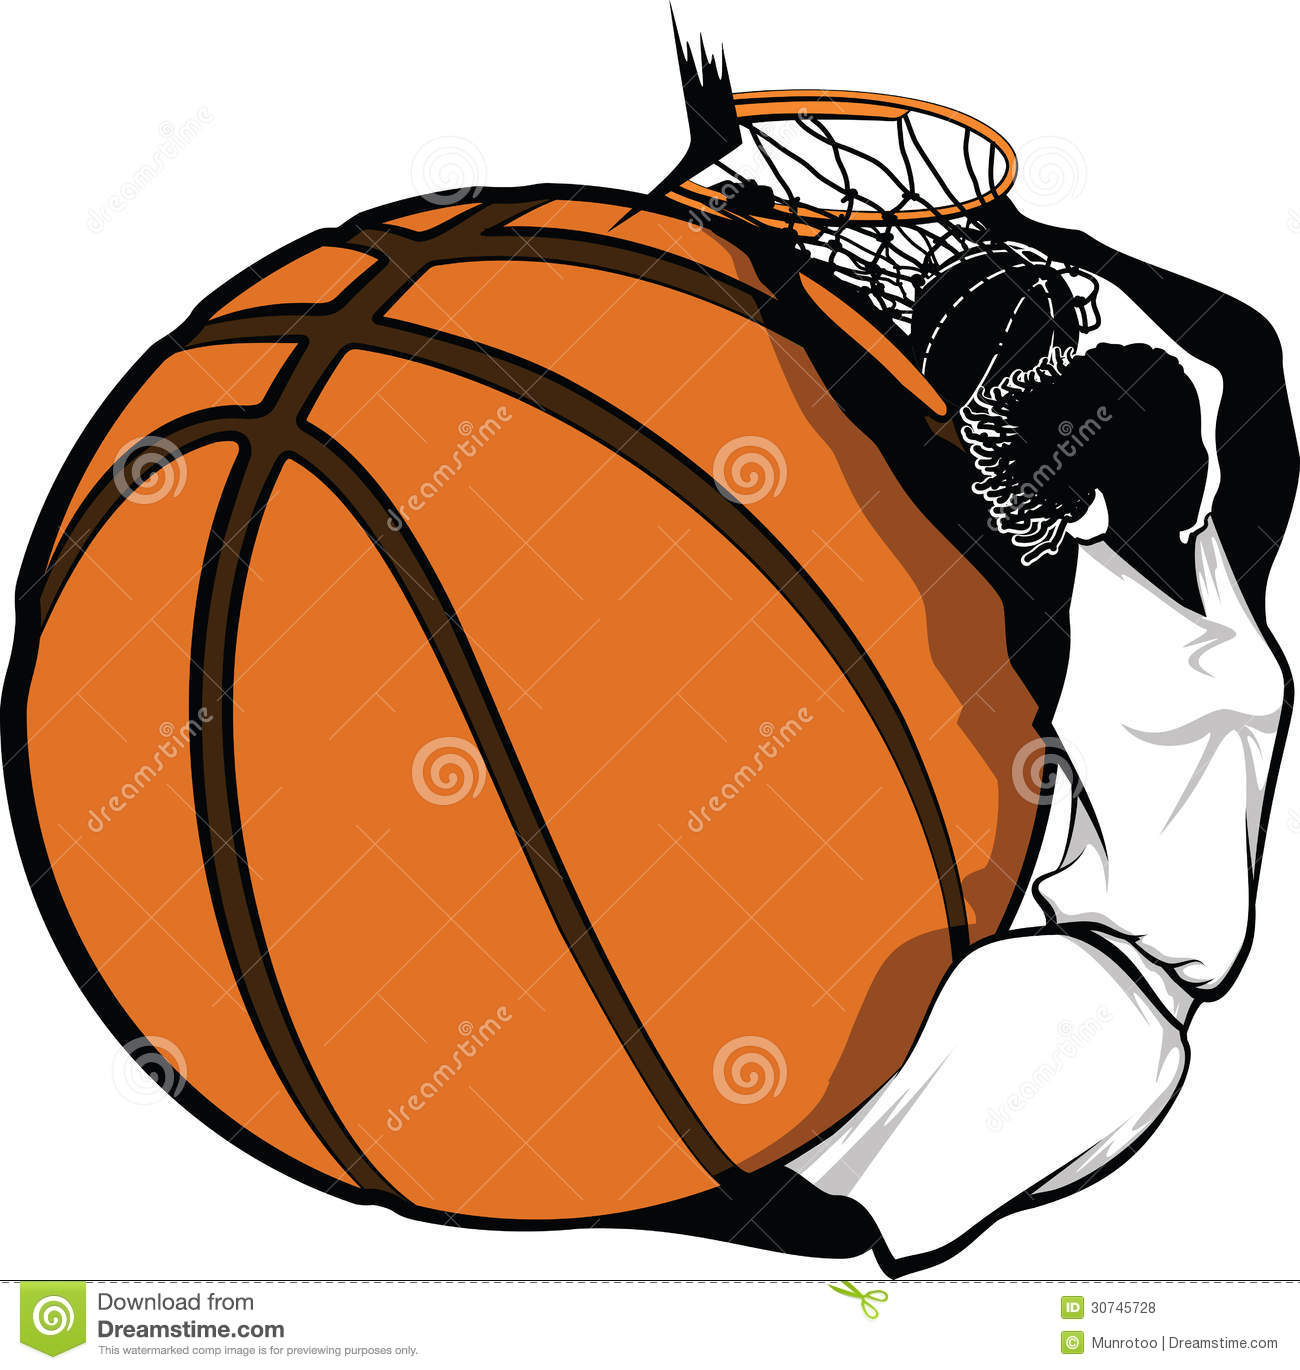 ... of a female basketball player swooped around a basketball dunking